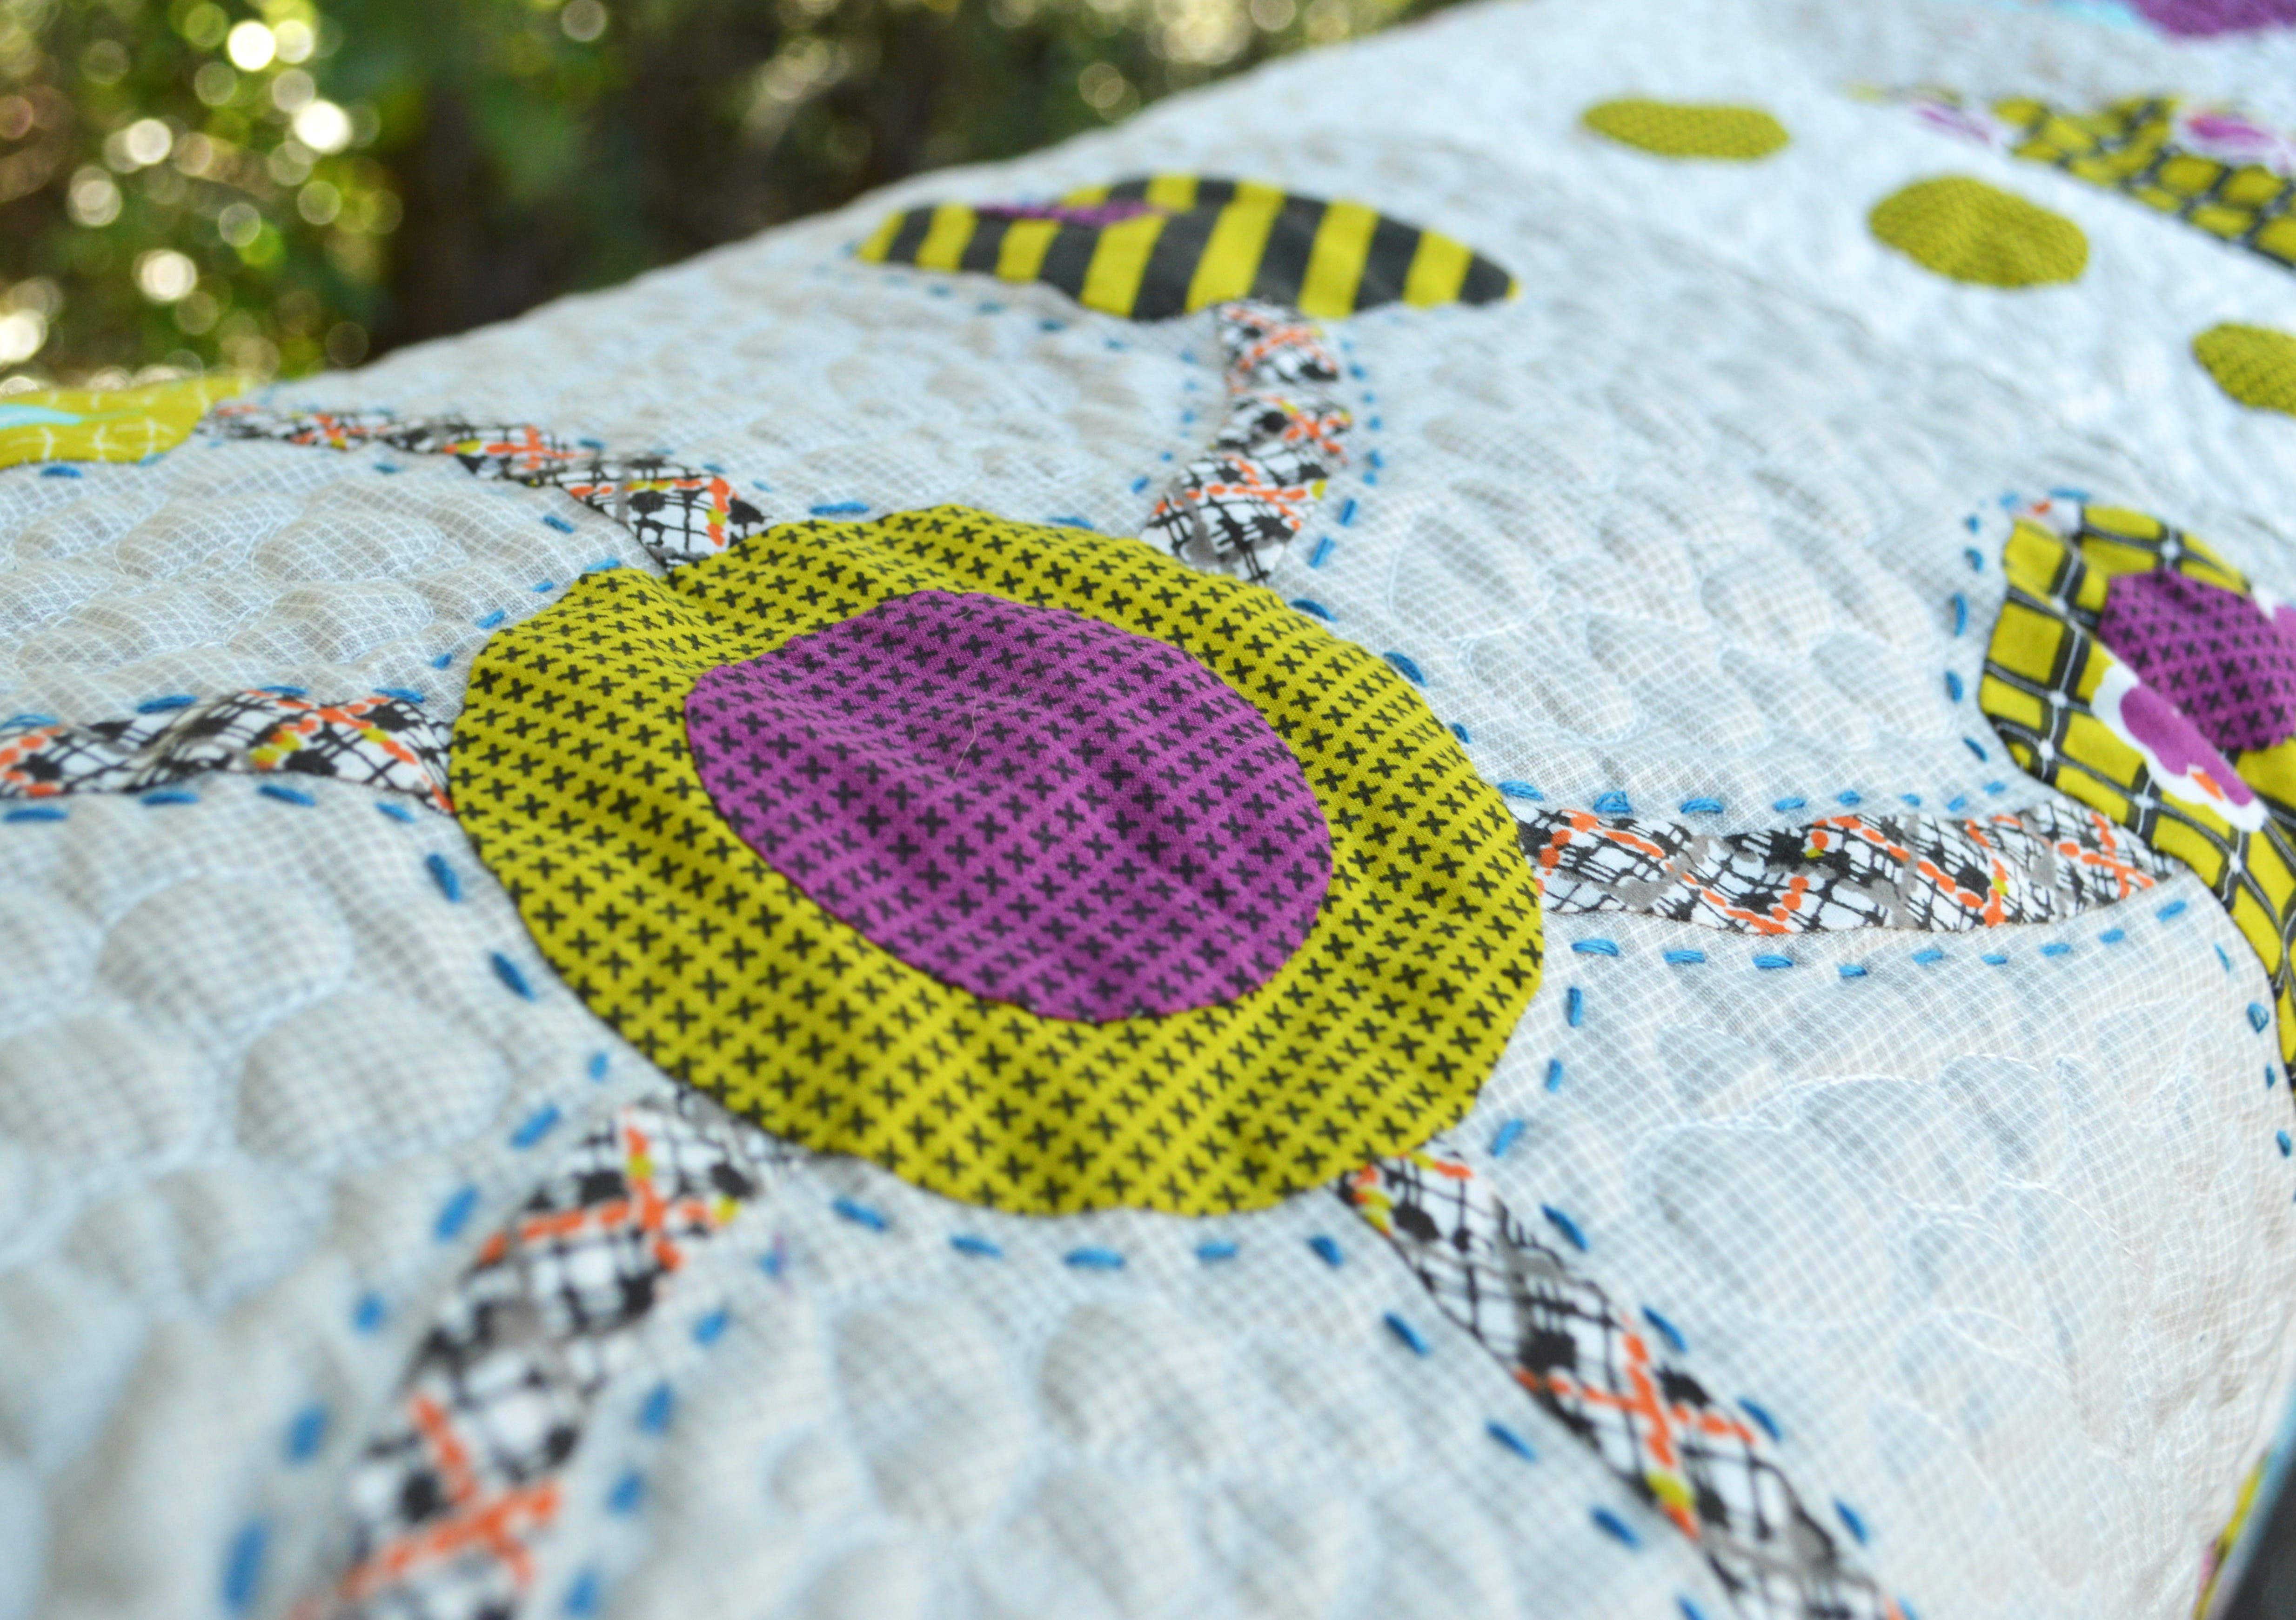 Close up on applique on a quilt with hand and machine quilting